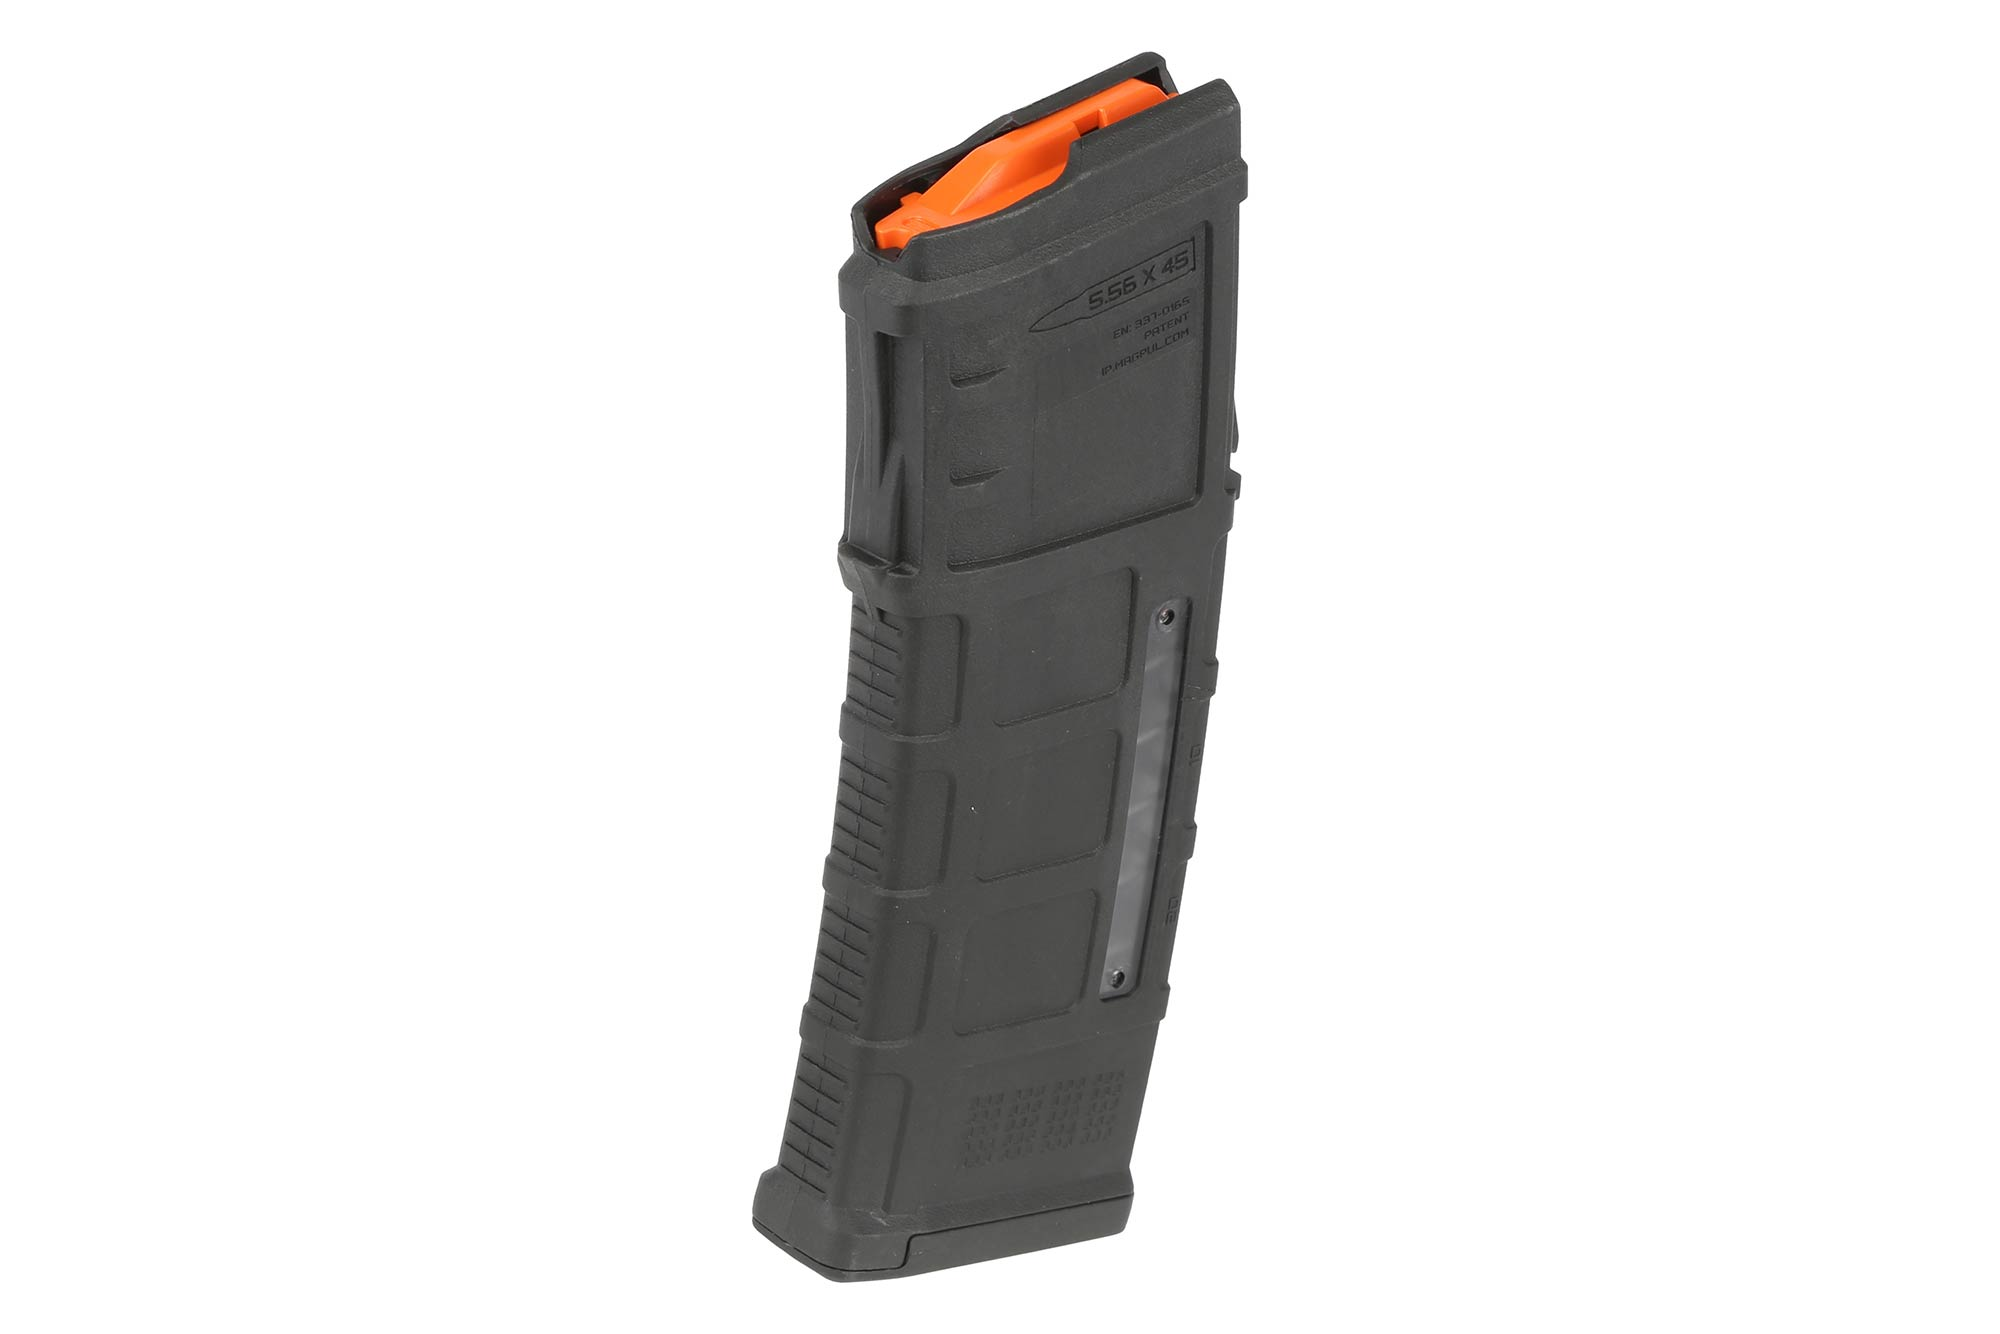 The Magpul PMAG 30 AUS GEN M3 window Steyr AUG 5.56 magazine features a bright orange follower